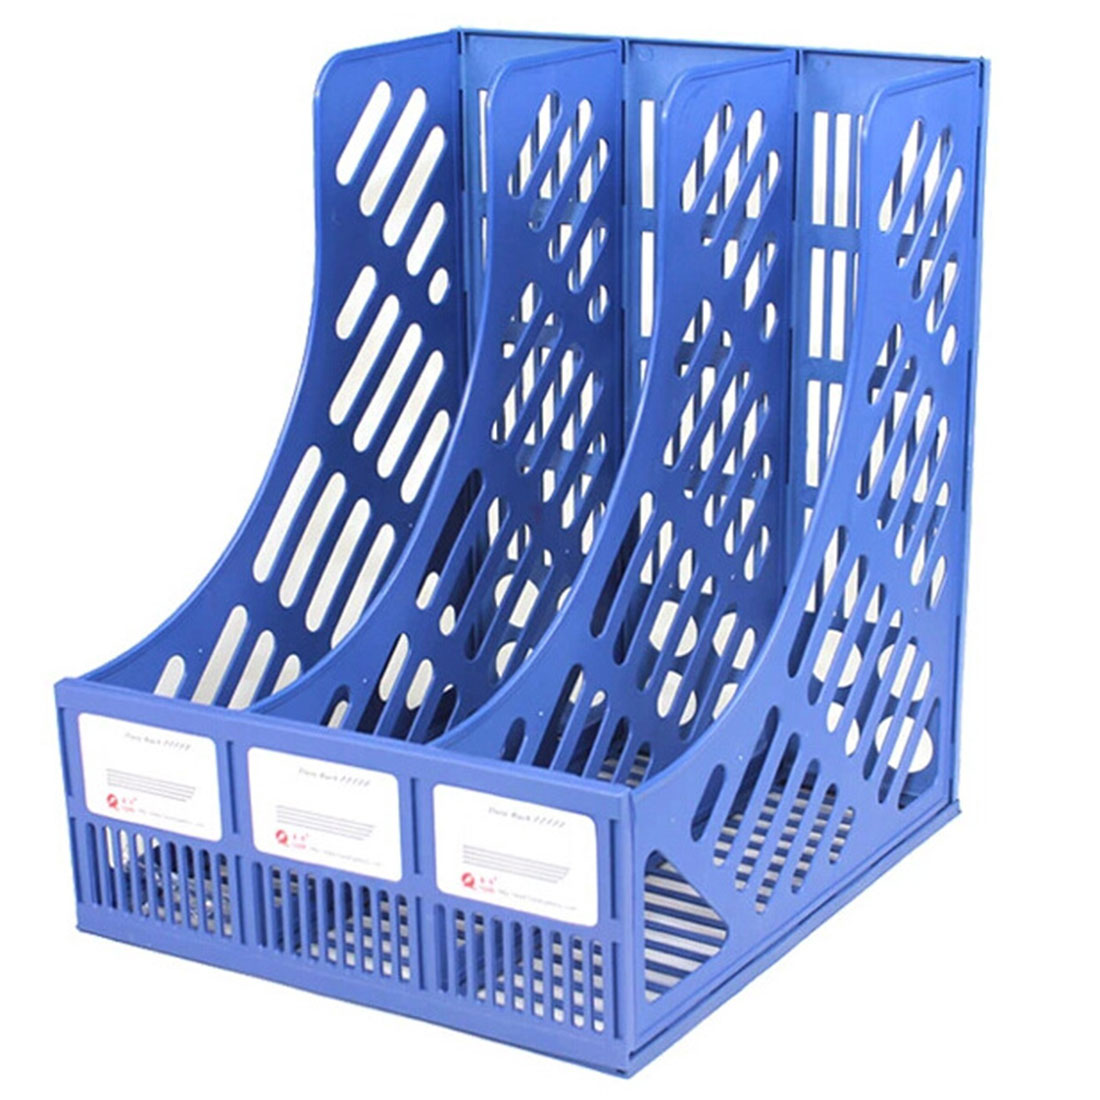 Three-grids Plastic File Storage Box Office Study Desktop Organizer for The Office Shelf for Books Documents